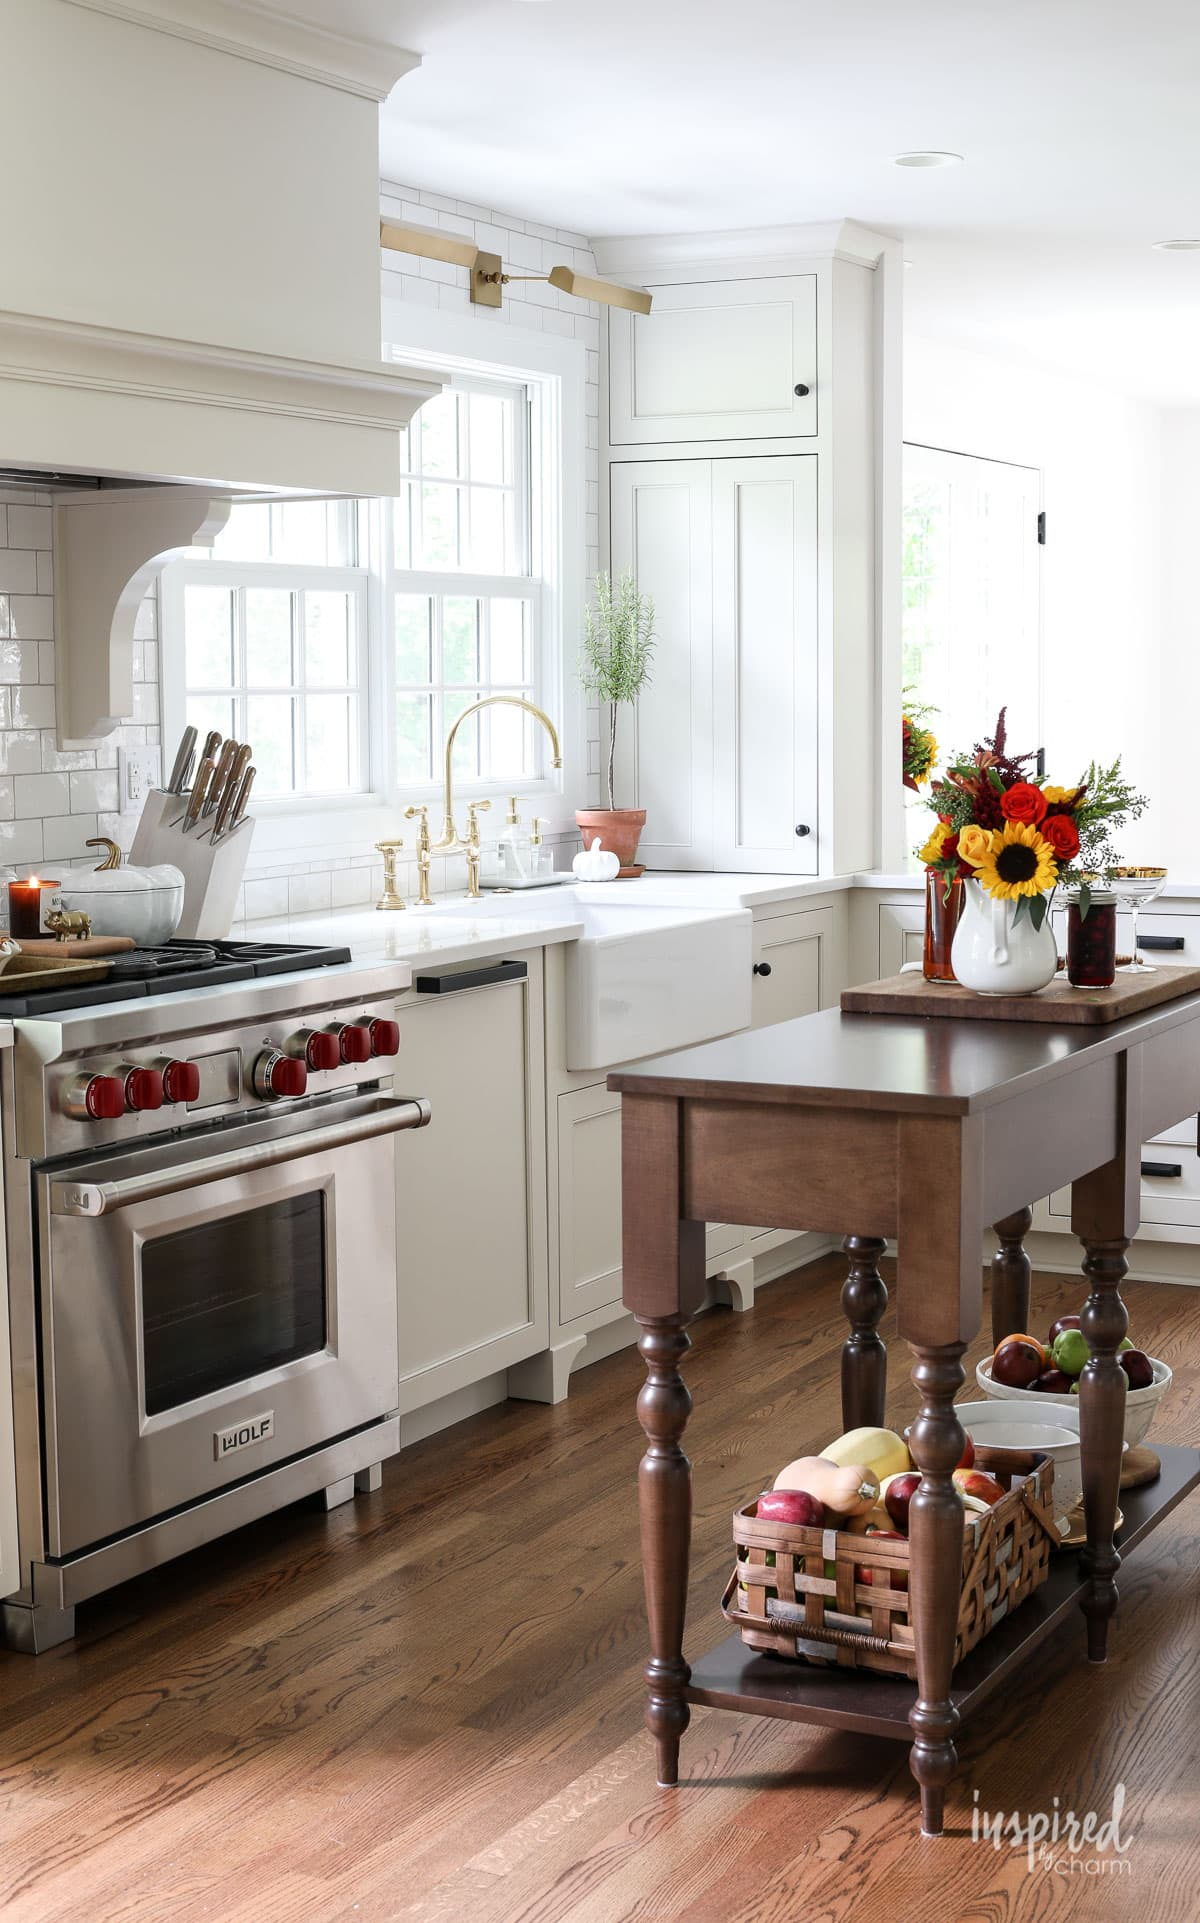 Simple Fall Decorating Ideas for the Kitchen - Fall Decor Tips